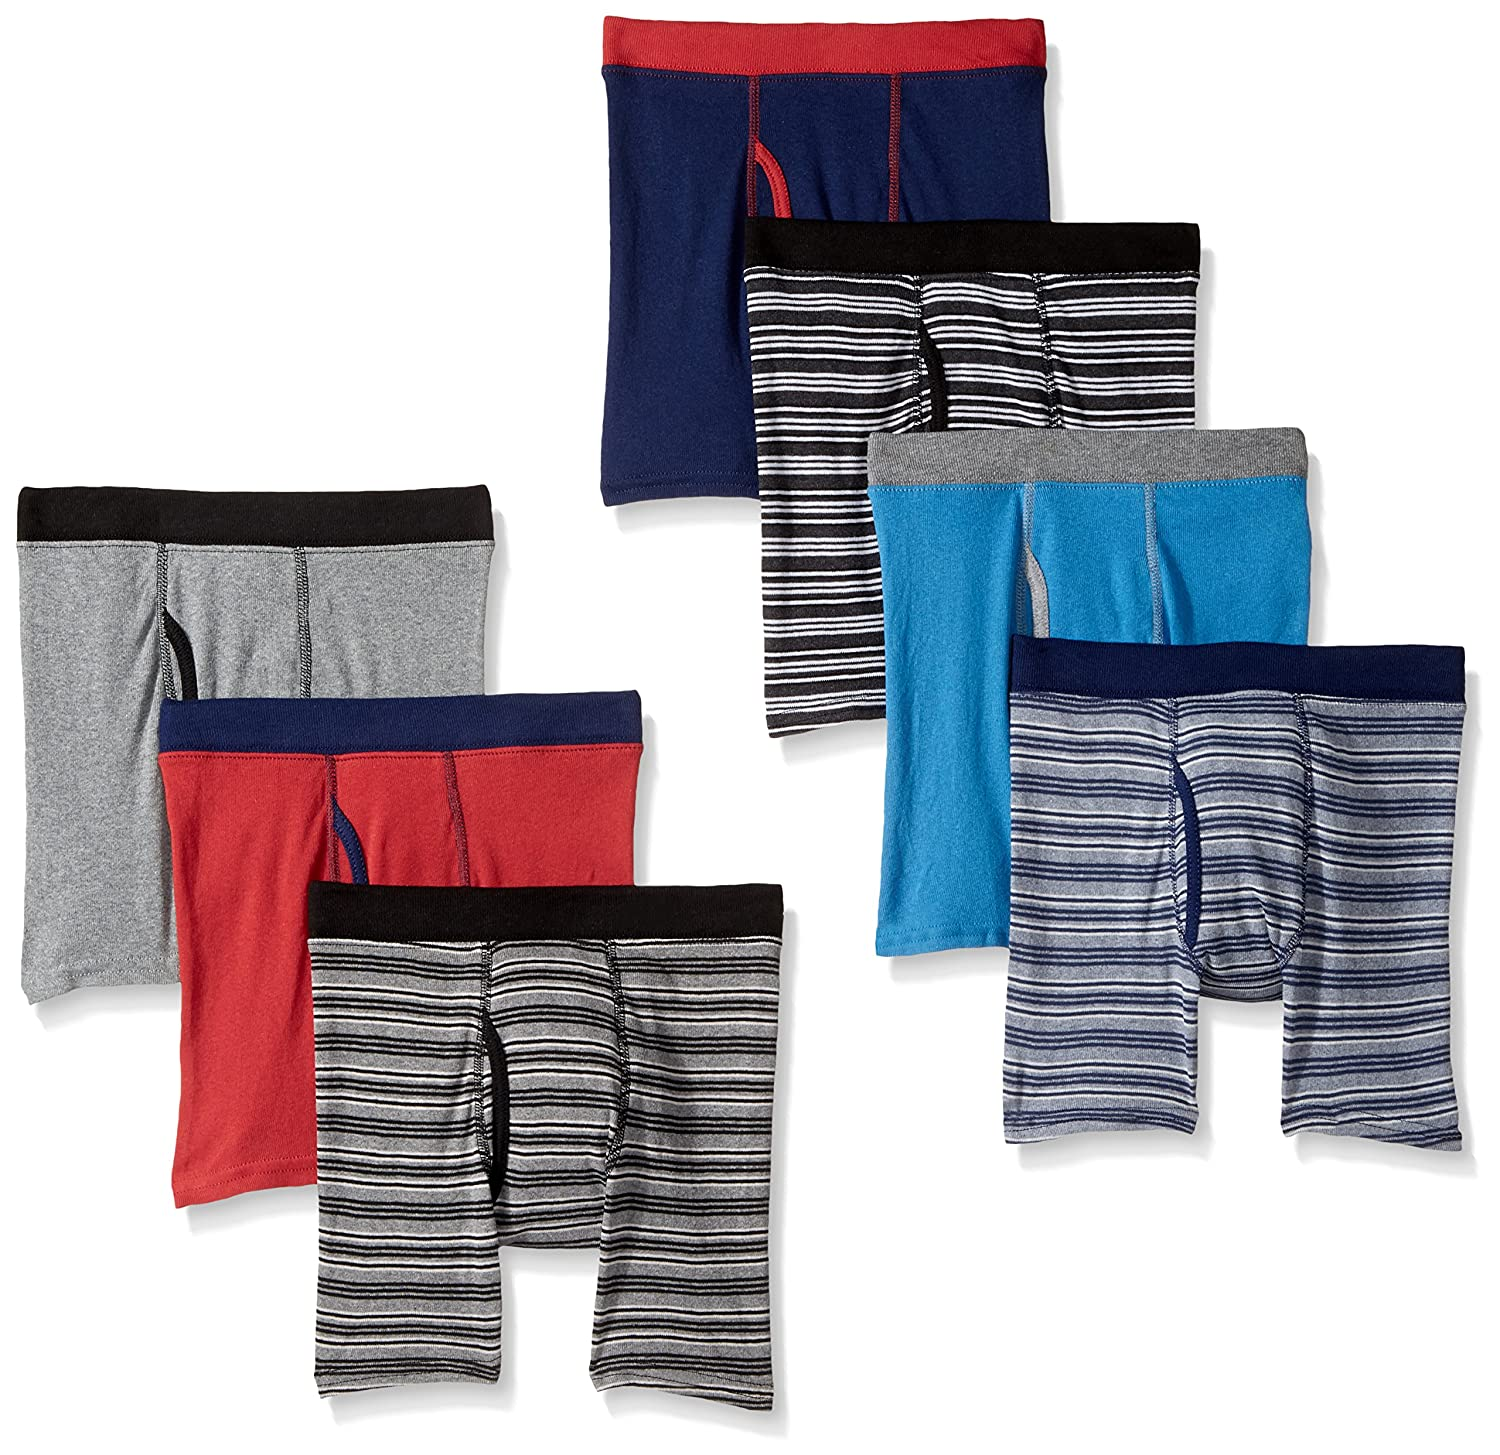 Hanes Boys Big Boys Boys Red Label ComfortSoft Boxer Briefs Hanes Boys 8-20 Underwear B75AW7